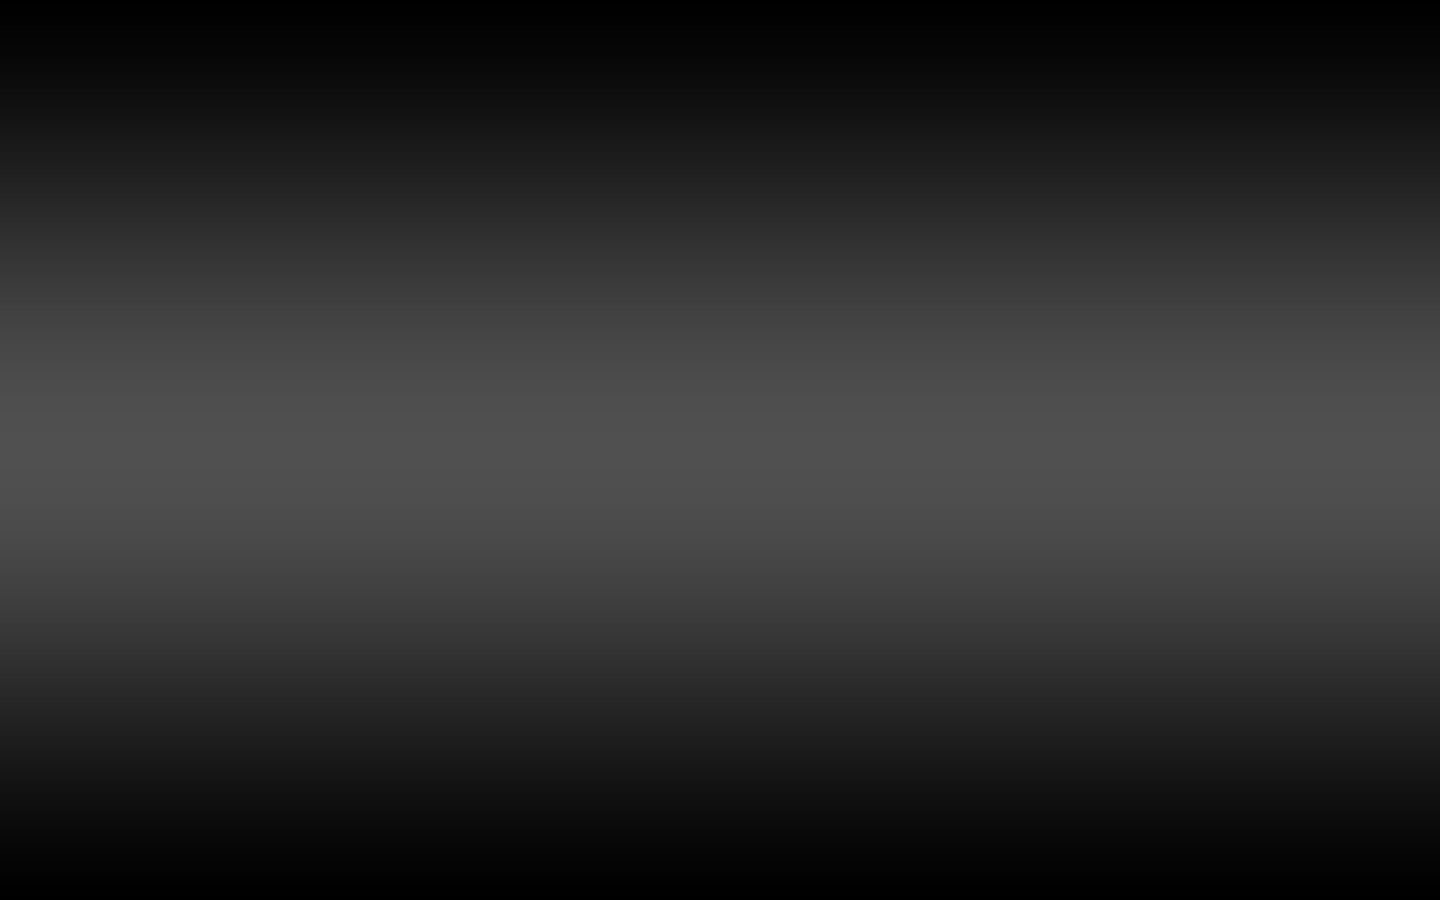 Black Grey Gradient Background For Web Hold Please